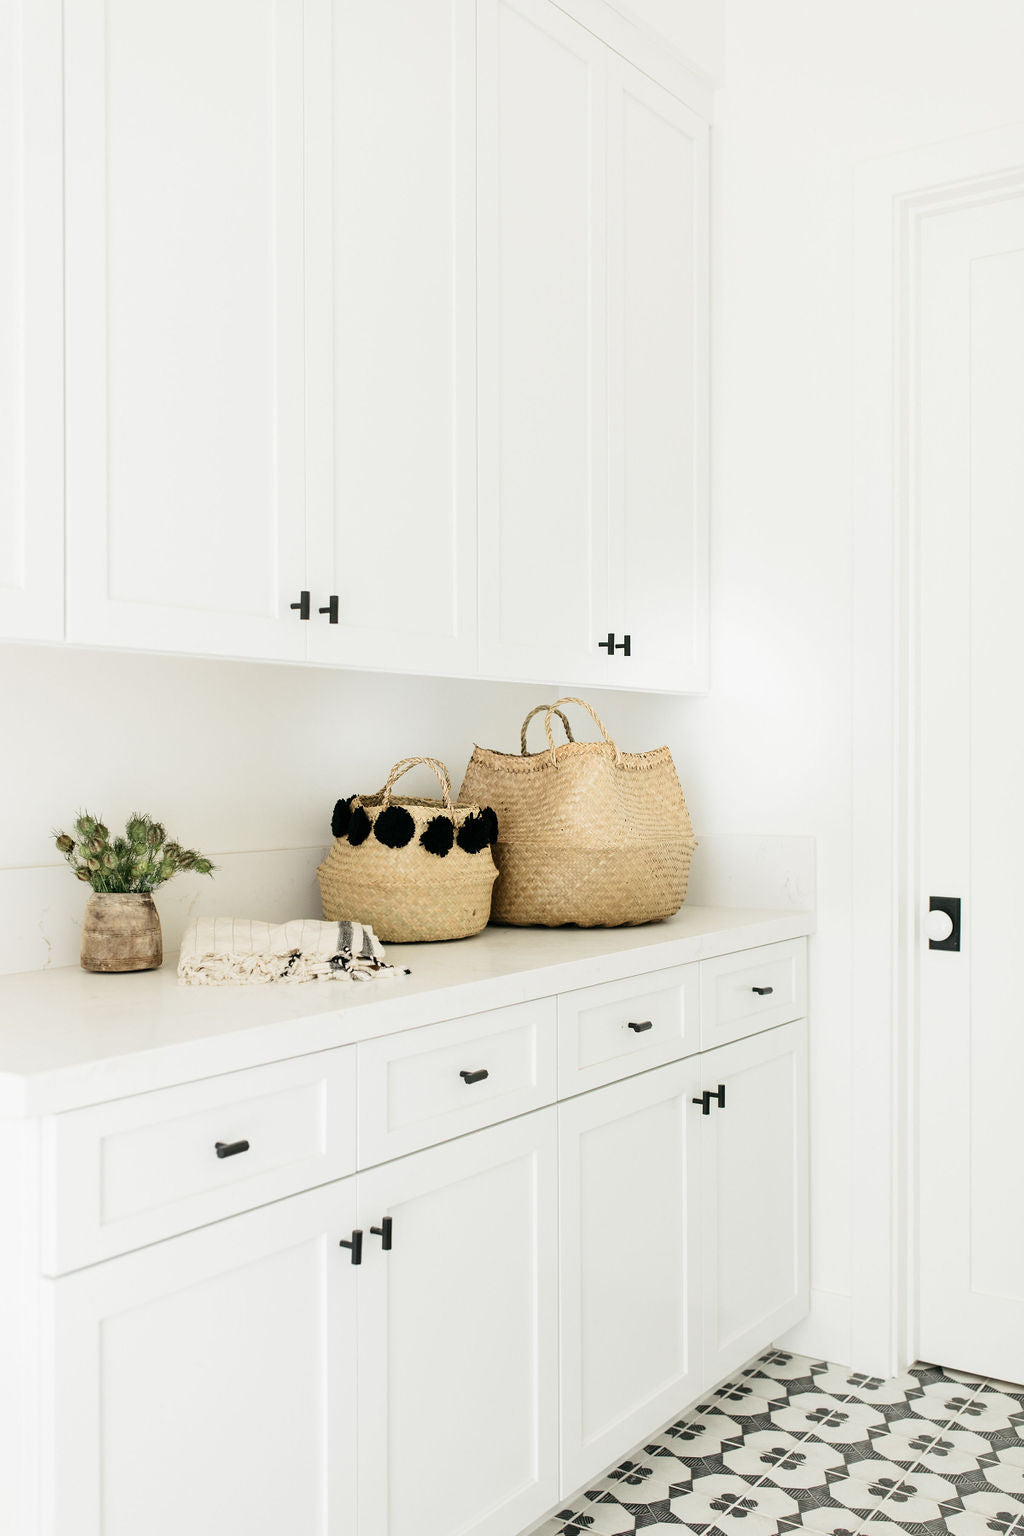 Albion project greige design shop + interiors Point Loma San Diego California black and white interior design Laundry room